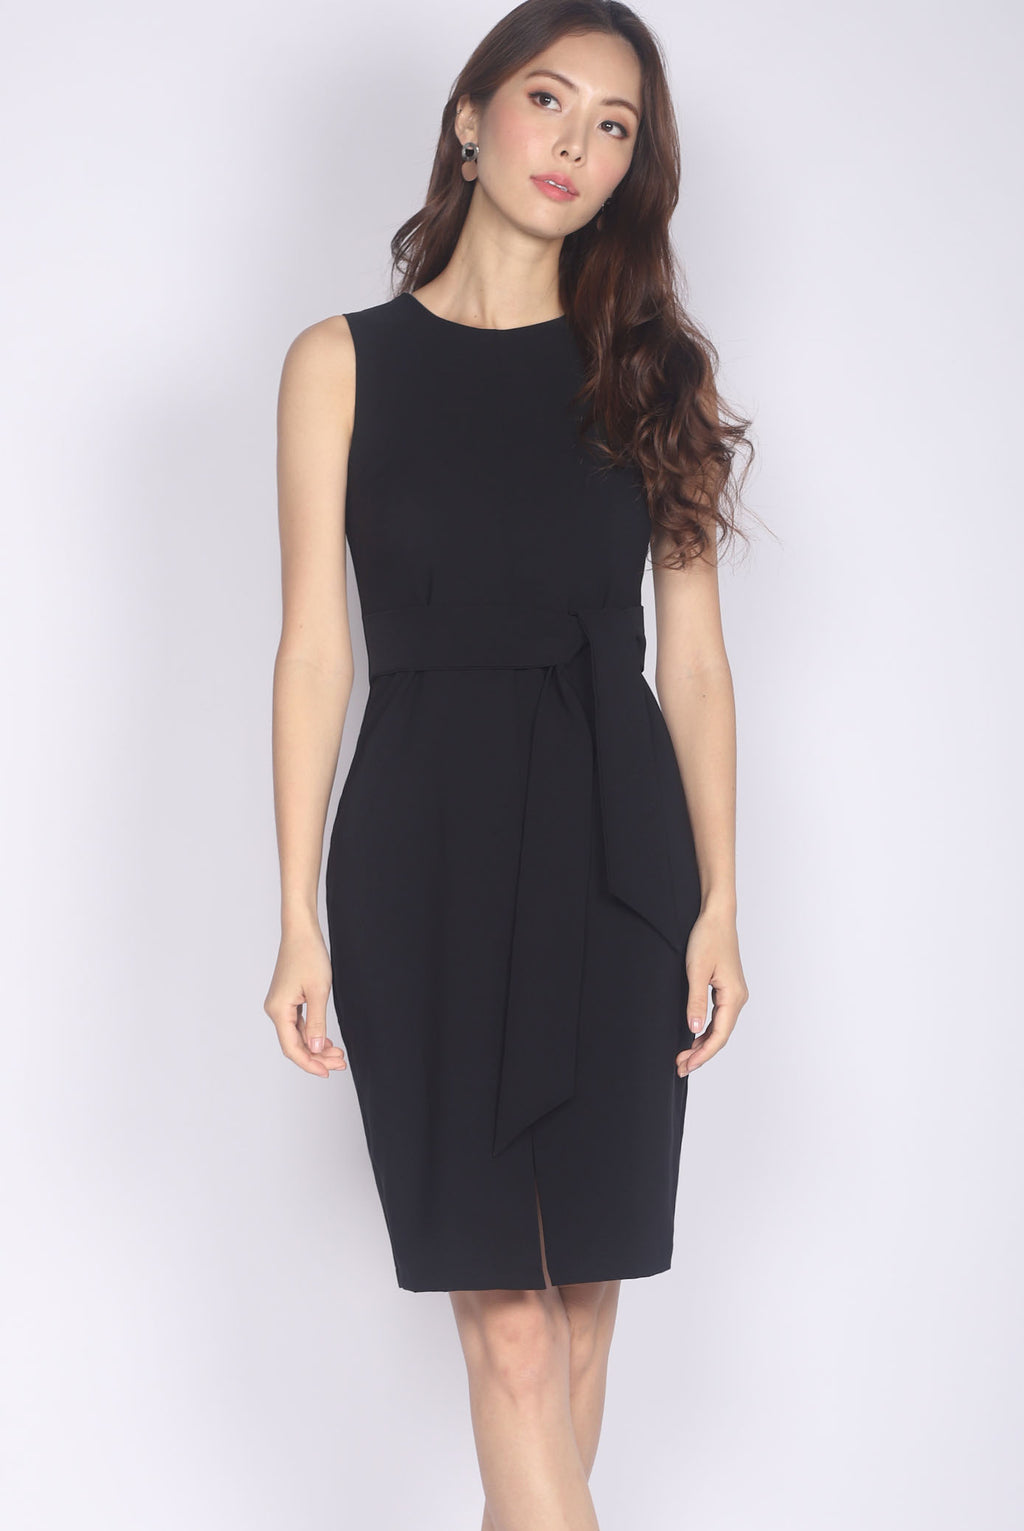 TDC Medora Tie Waist Pencil Dress In Black